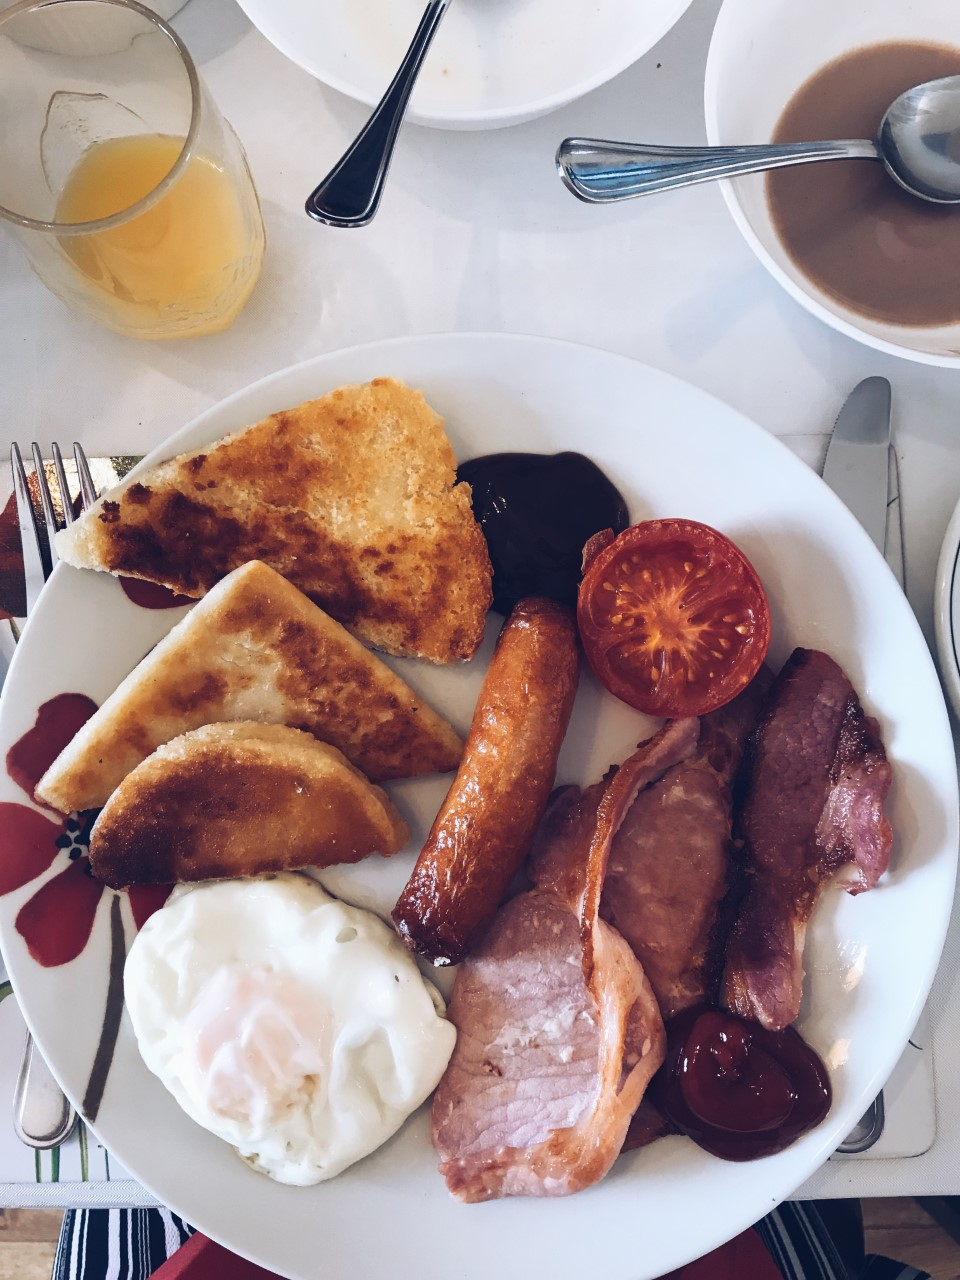 Glendales famous Ulster Fry!